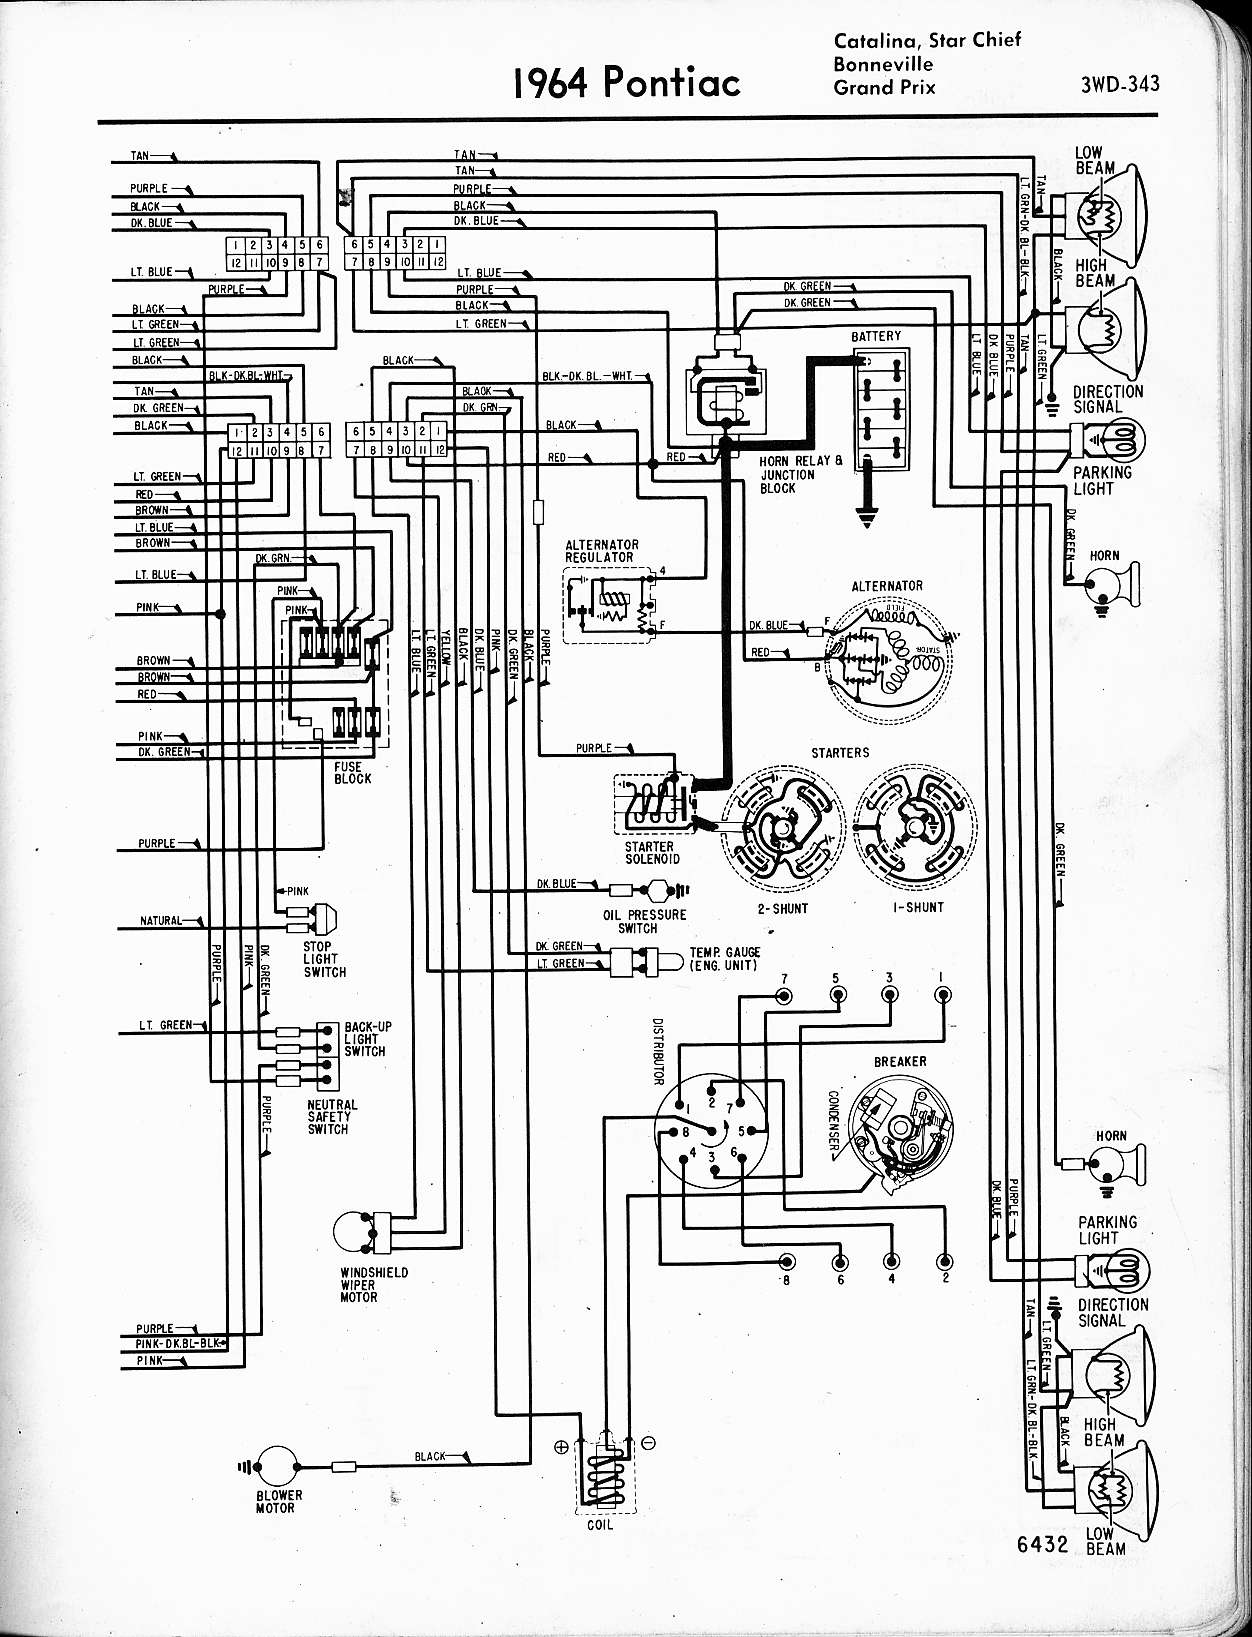 1964 gto wiring diagram wiring diagrams rh silviaardila co 1965 pontiac lemans wiring diagram 1965 pontiac parisienne wiring diagram